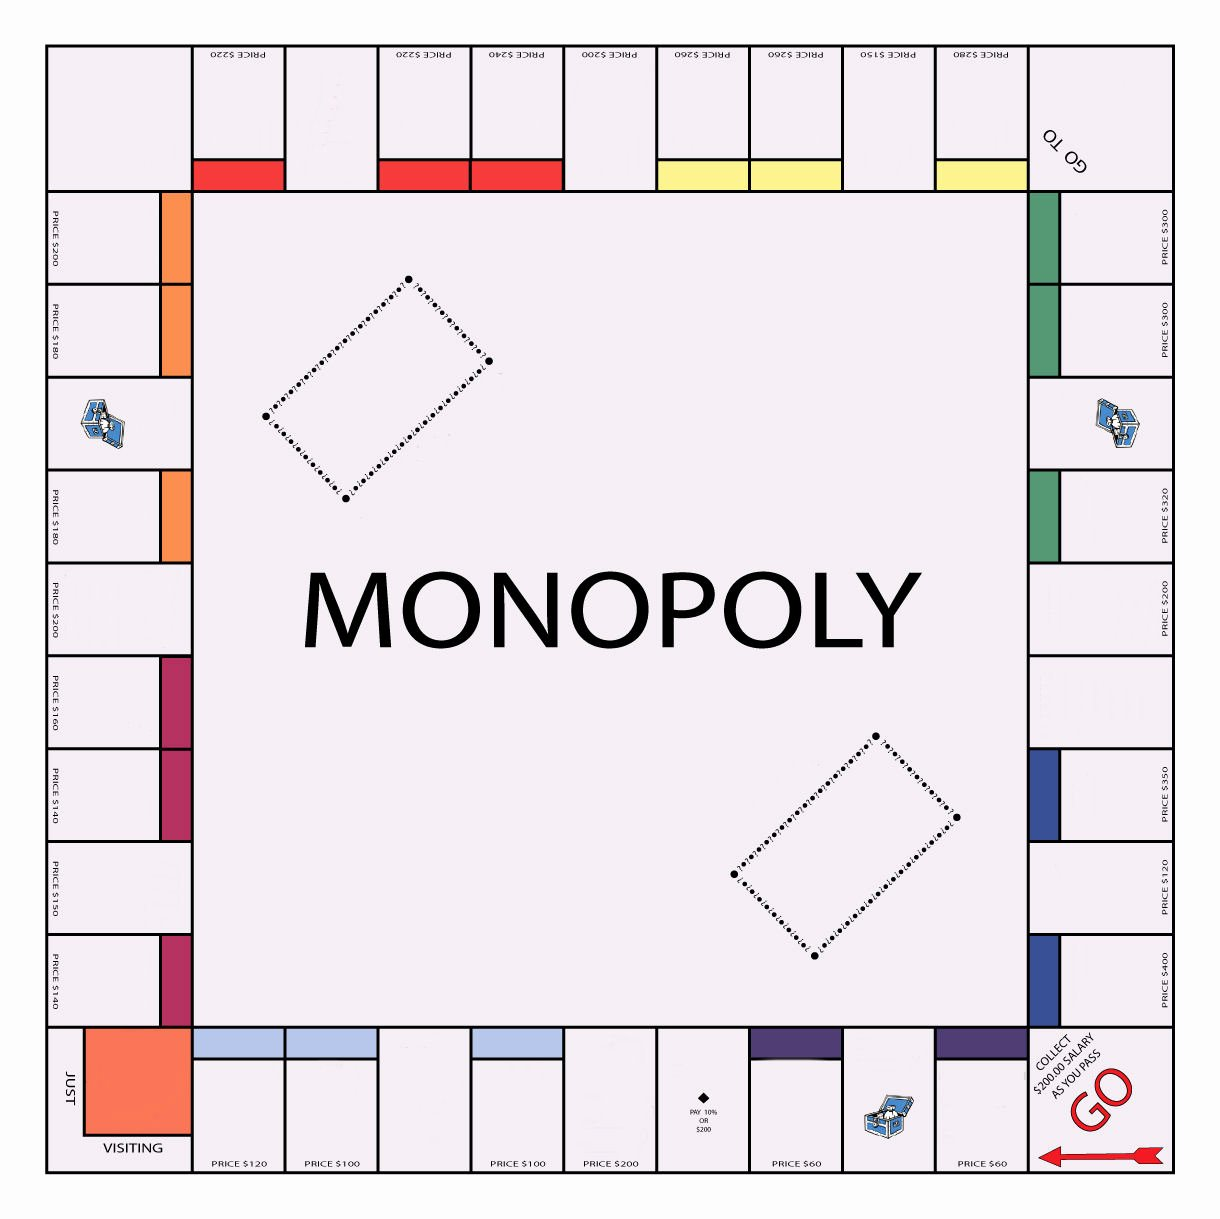 Blank Monopoly Board Awesome Economic Development News for Sun Prairie Wisconsin